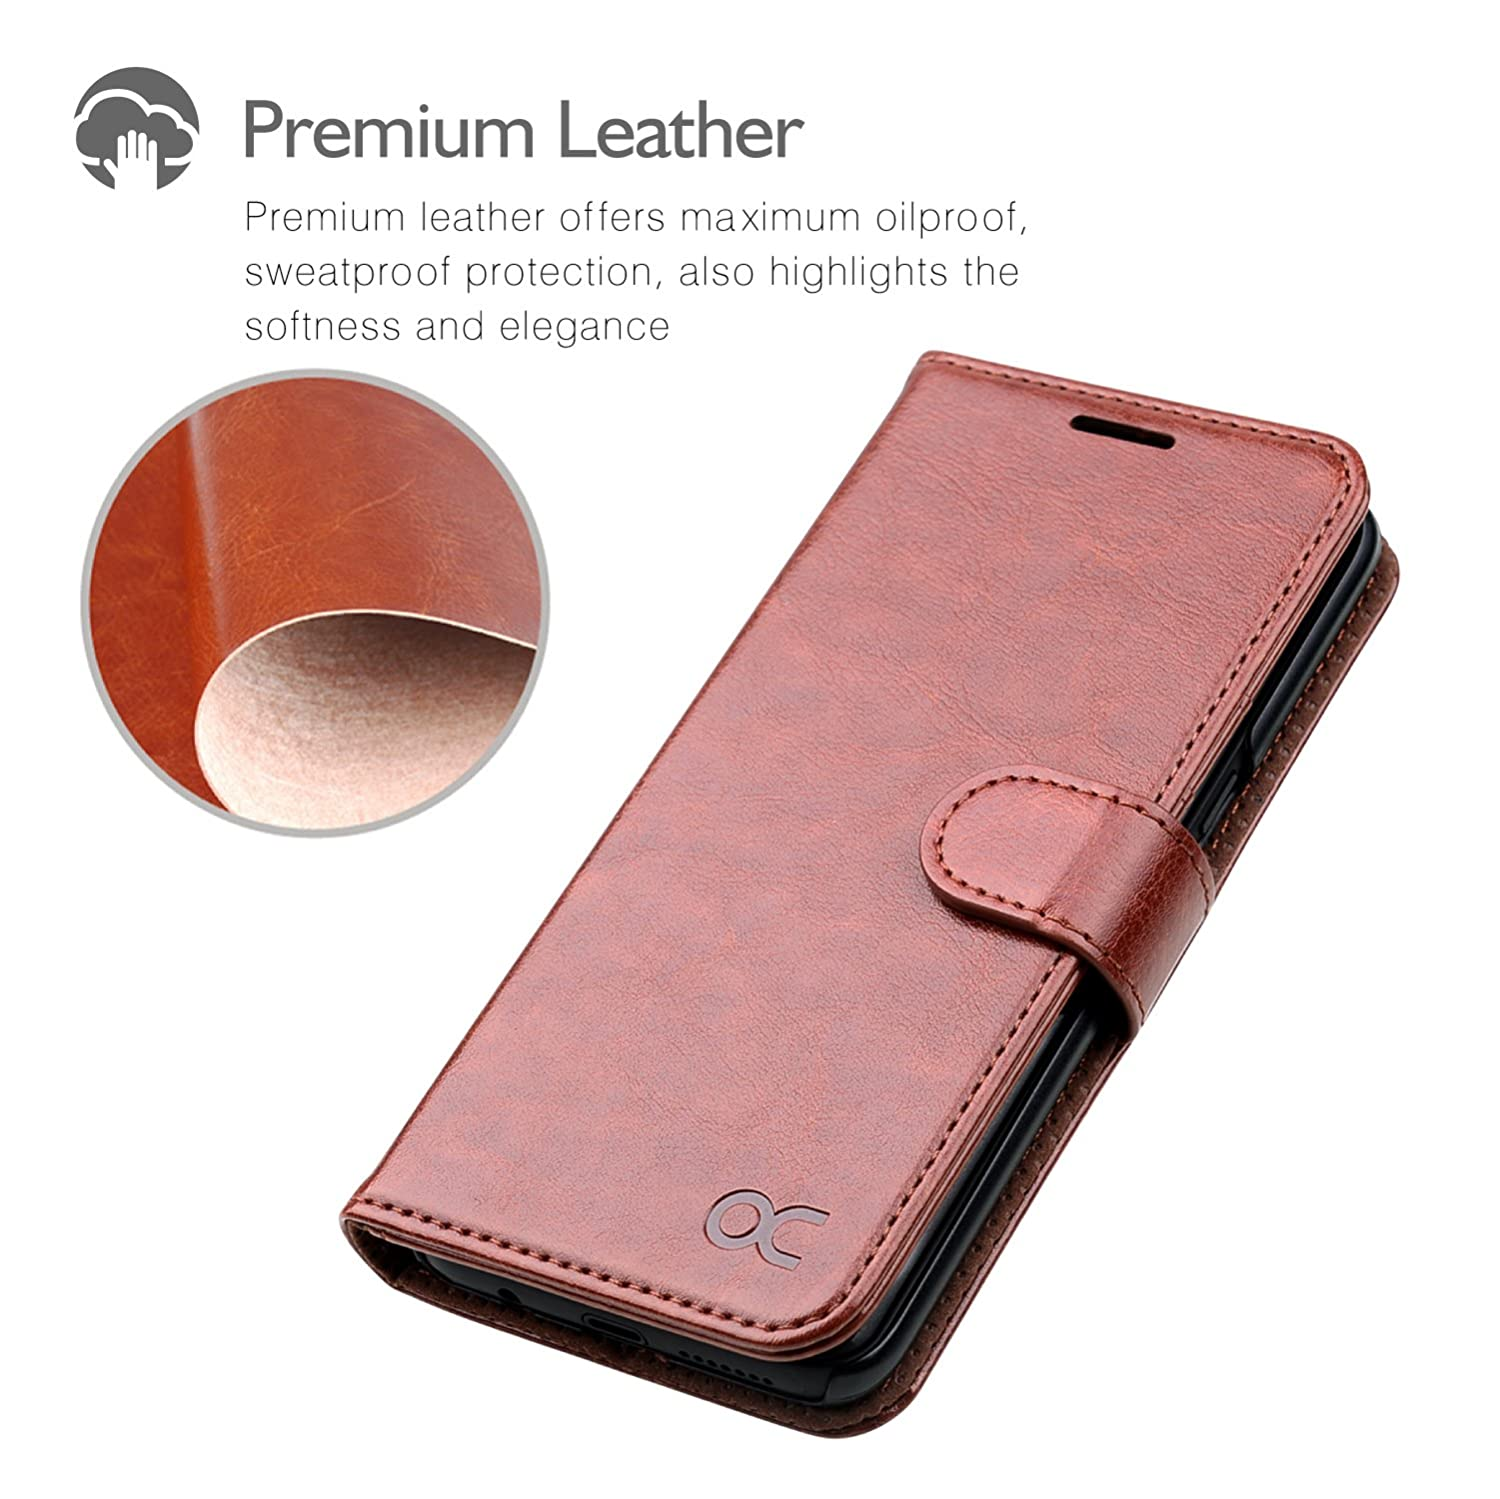 Ocase Samsung Galaxy S8 Case Leather Flip Wallet Goospery J3 2017 Pro Canvas Diary Orange For Devices Brown Cell Phones Accessories